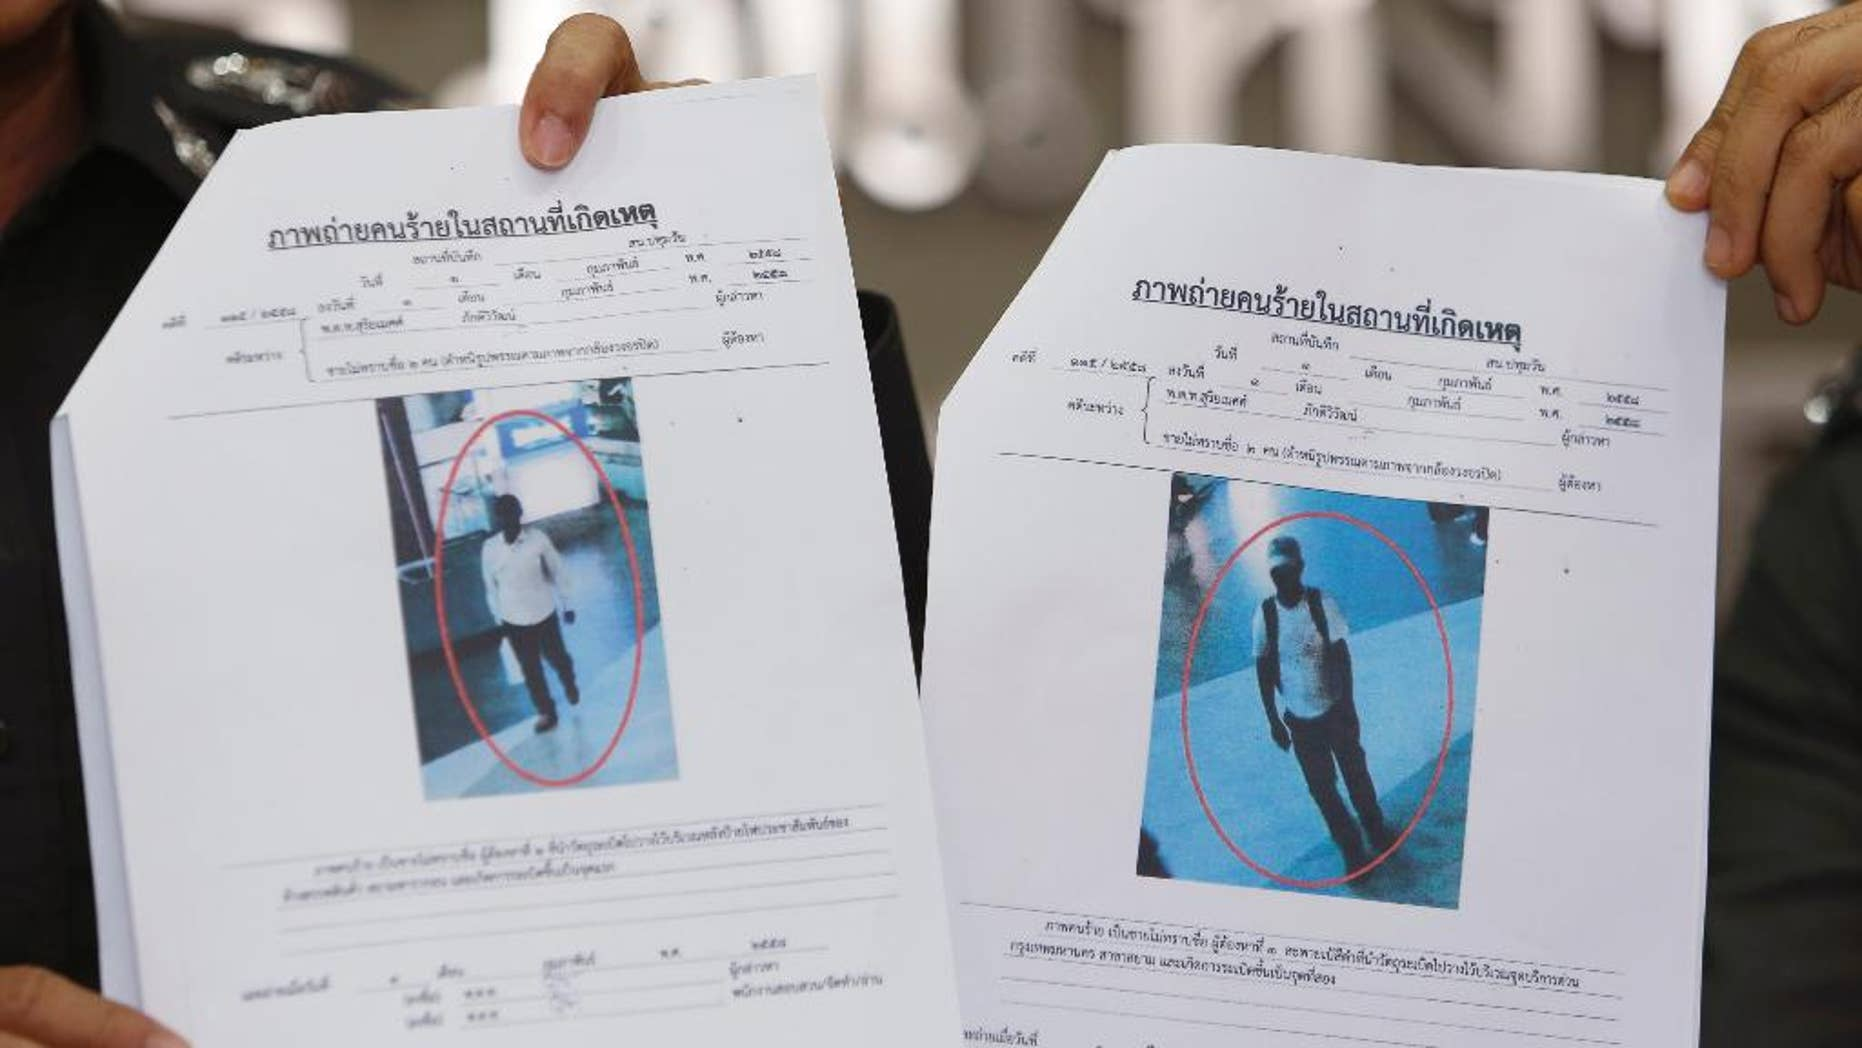 """Photos of two suspects believed linked to a pair of small bomb blasts outside a luxury shopping mall in Bangkok over the weekend, are shown by police officers at the police headquarters in Bangkok, Thailand Wednesday, Feb. 4, 2015. Authorities in Thailand have issued arrest warrants for the two suspects. The blurry images of the suspects, described as """"Asian-looking"""" by a police spokesman, were captured on closed-circuit camera footage close to where the homemade pipe bombs detonated and wounded one person. (AP Photo/Sakchai Lalit)"""